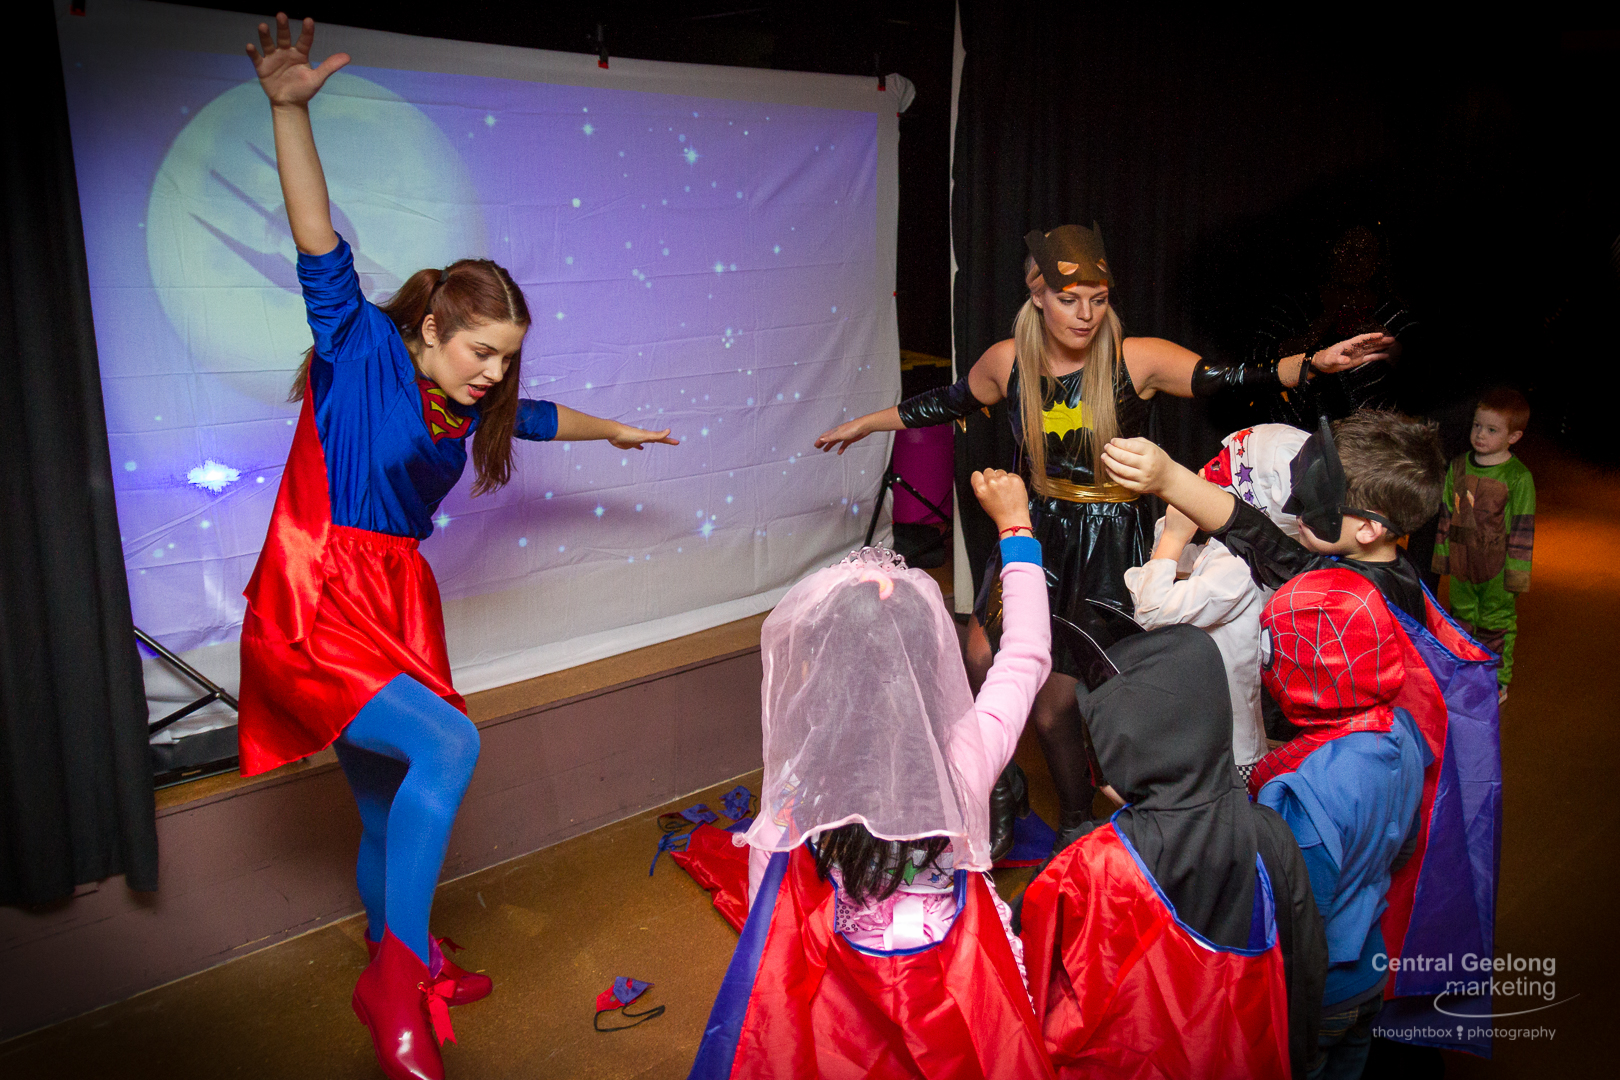 superhero-workshop-events-kids-family-the-party-girl.jpg